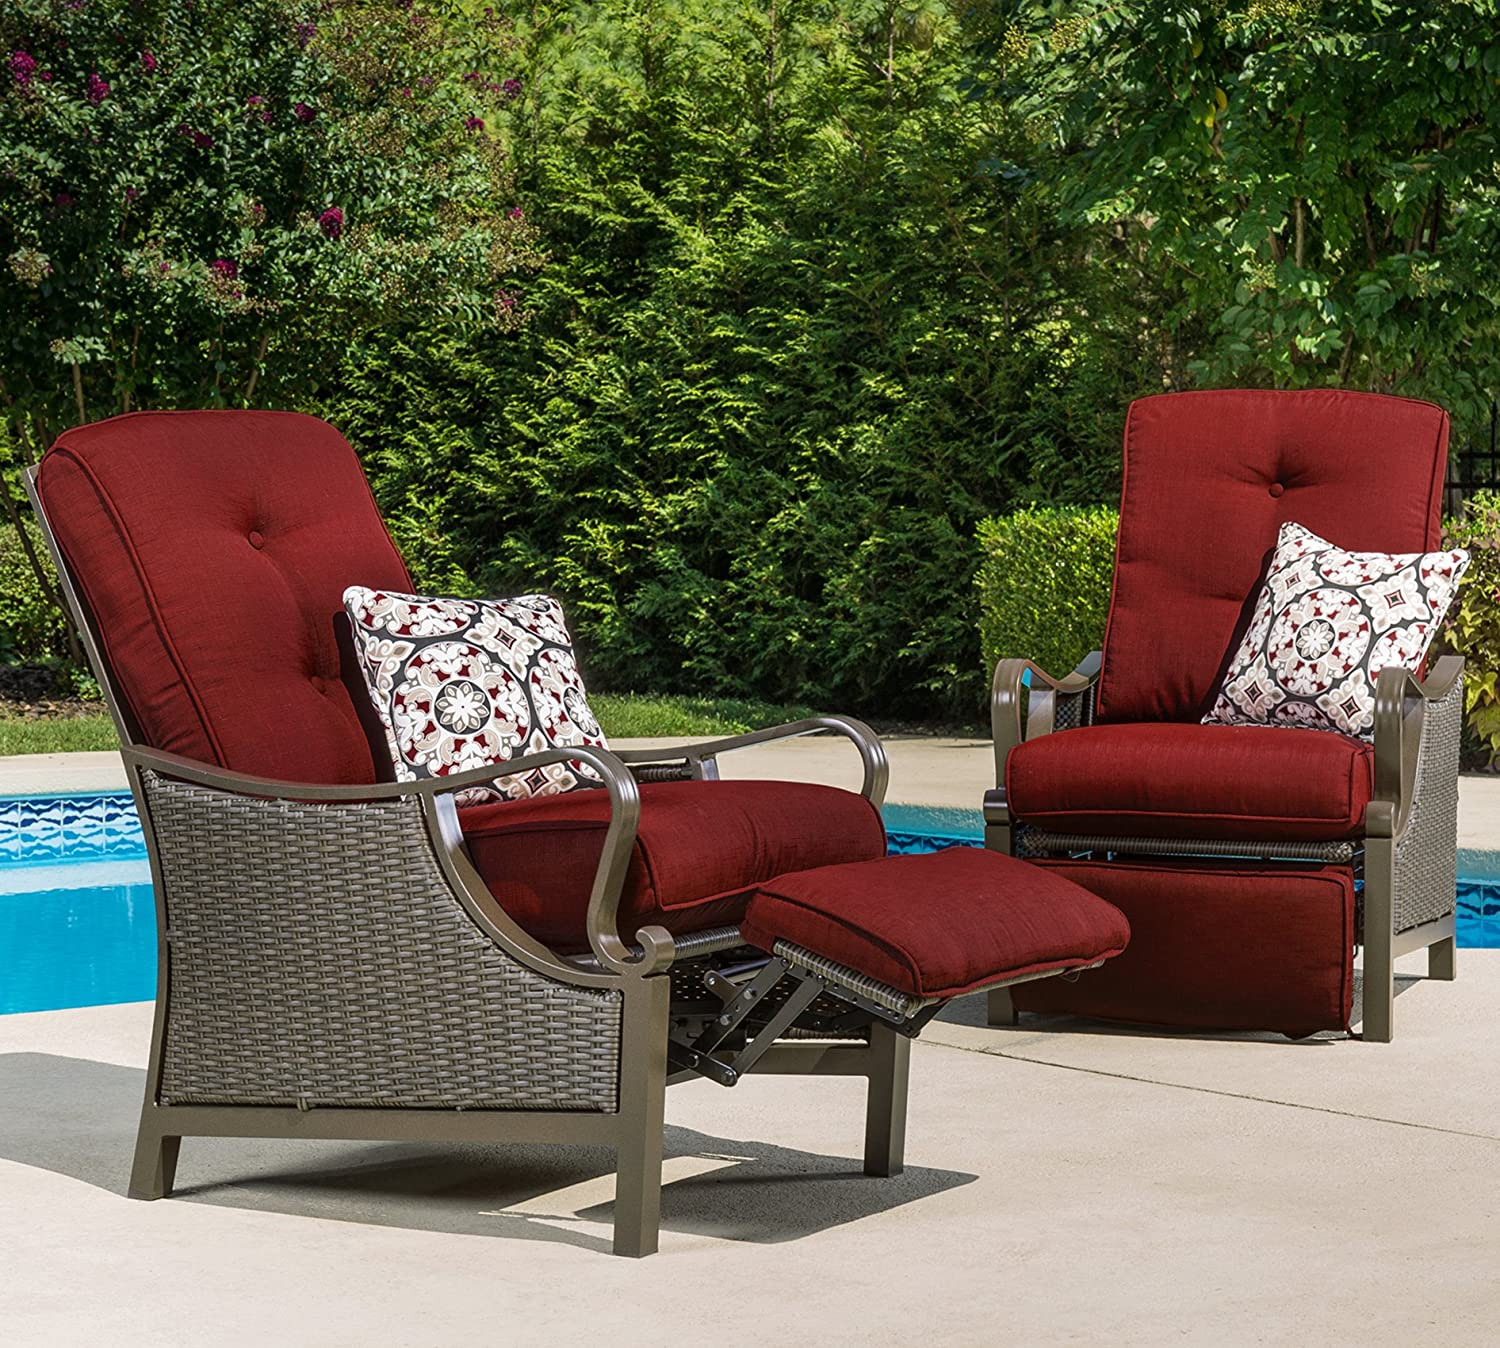 Hanover Outdoor Ventura Outdoor Luxury Recliner Crimson Red